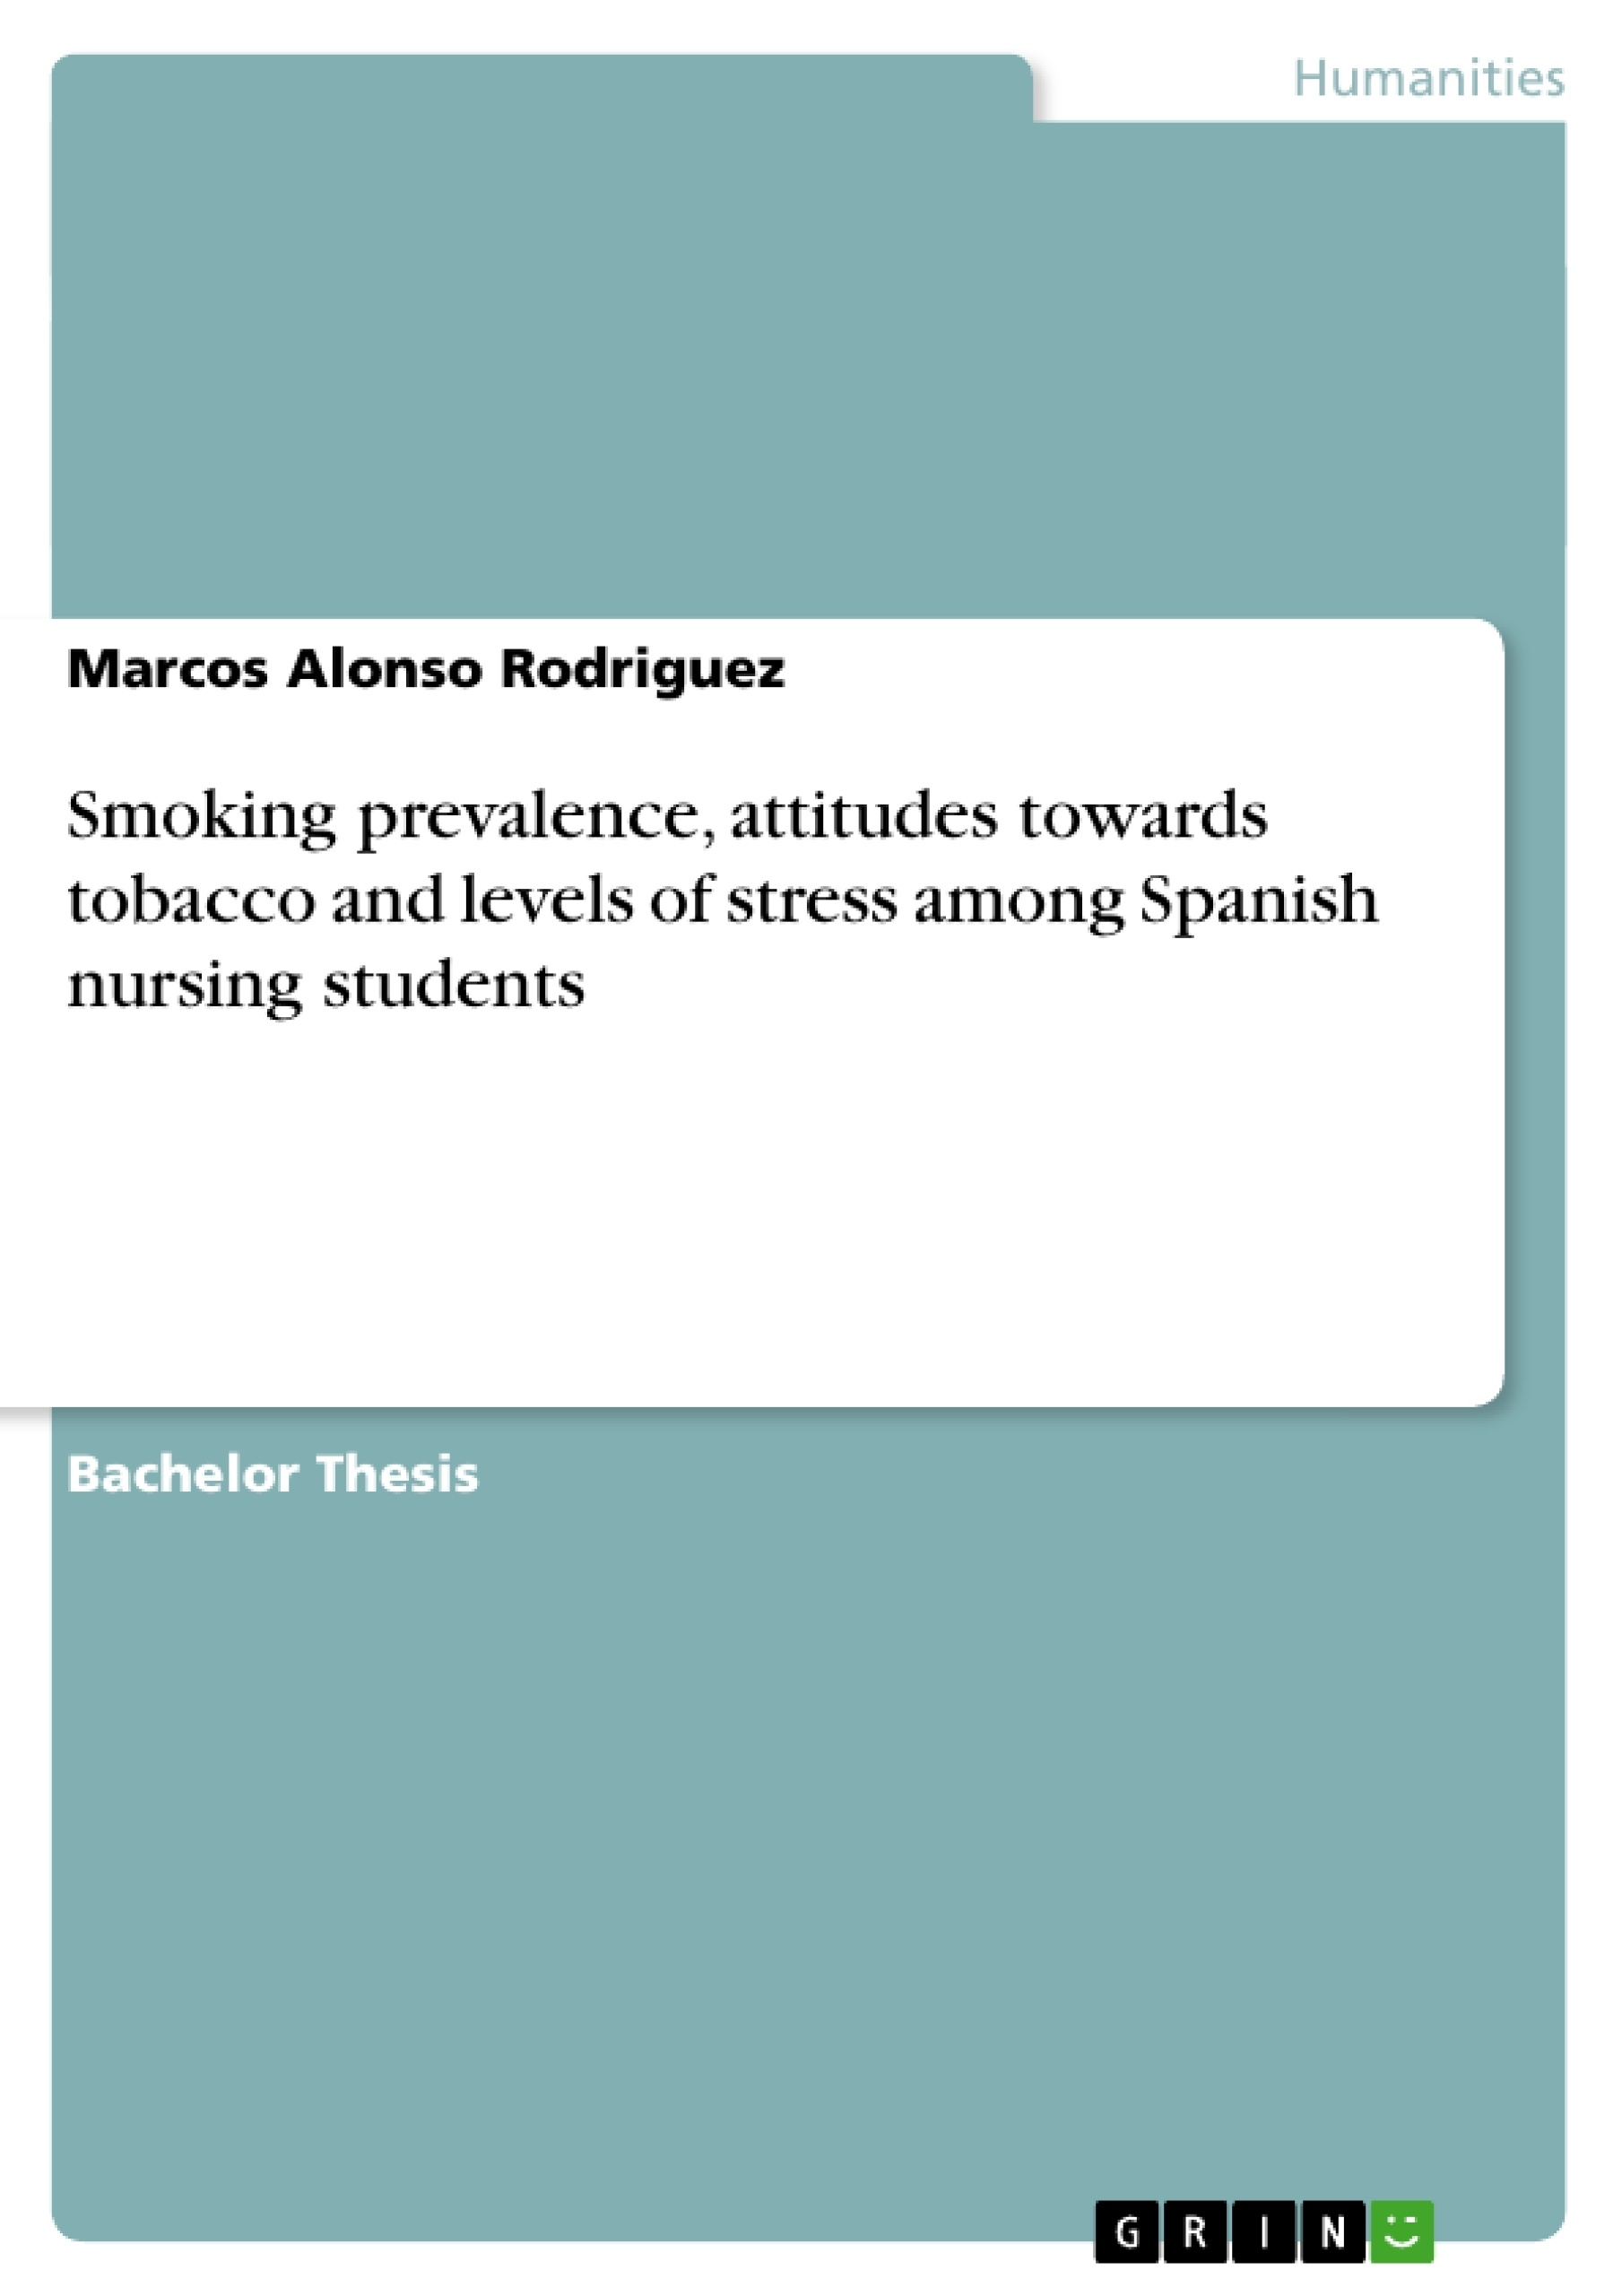 Title: Smoking prevalence, attitudes towards tobacco and levels of stress among Spanish nursing students